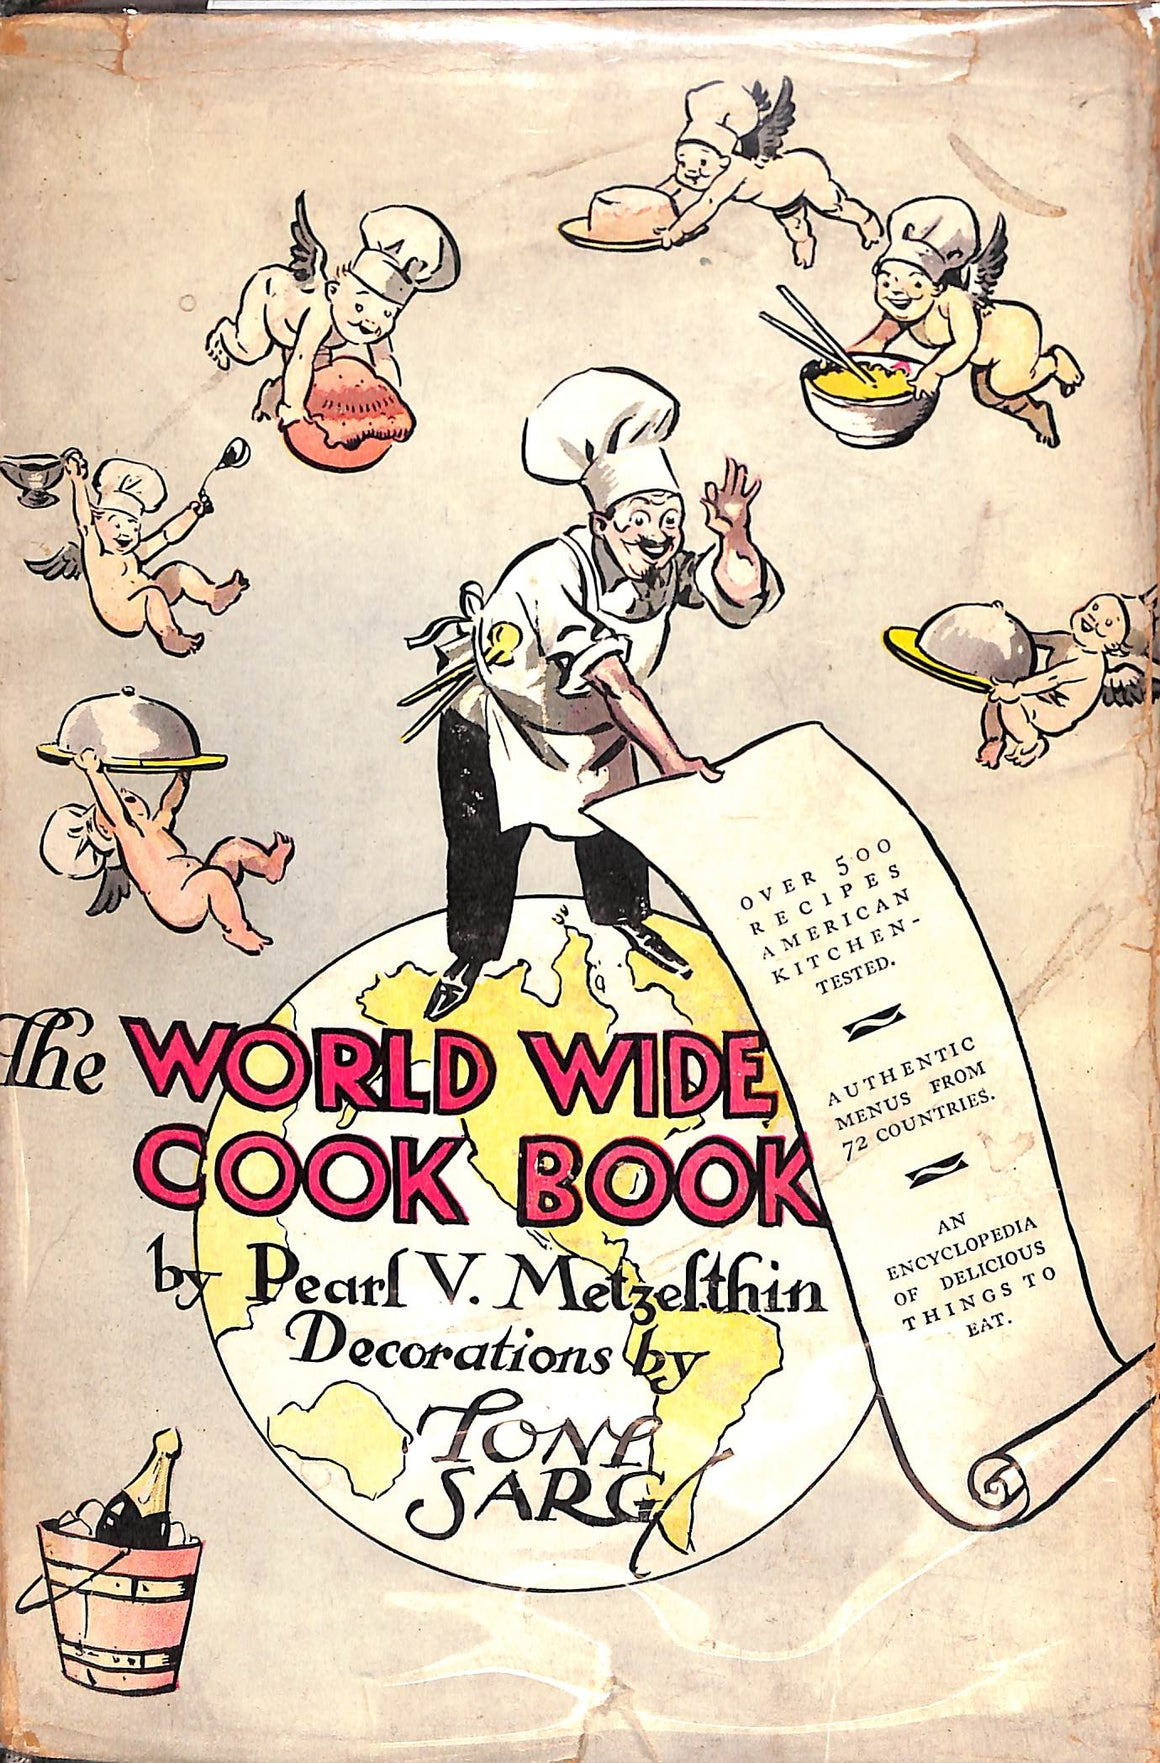 The World Wide Cook Book: Menus and Recipes of 75 Nations w/ Decorations by Tony Sarg